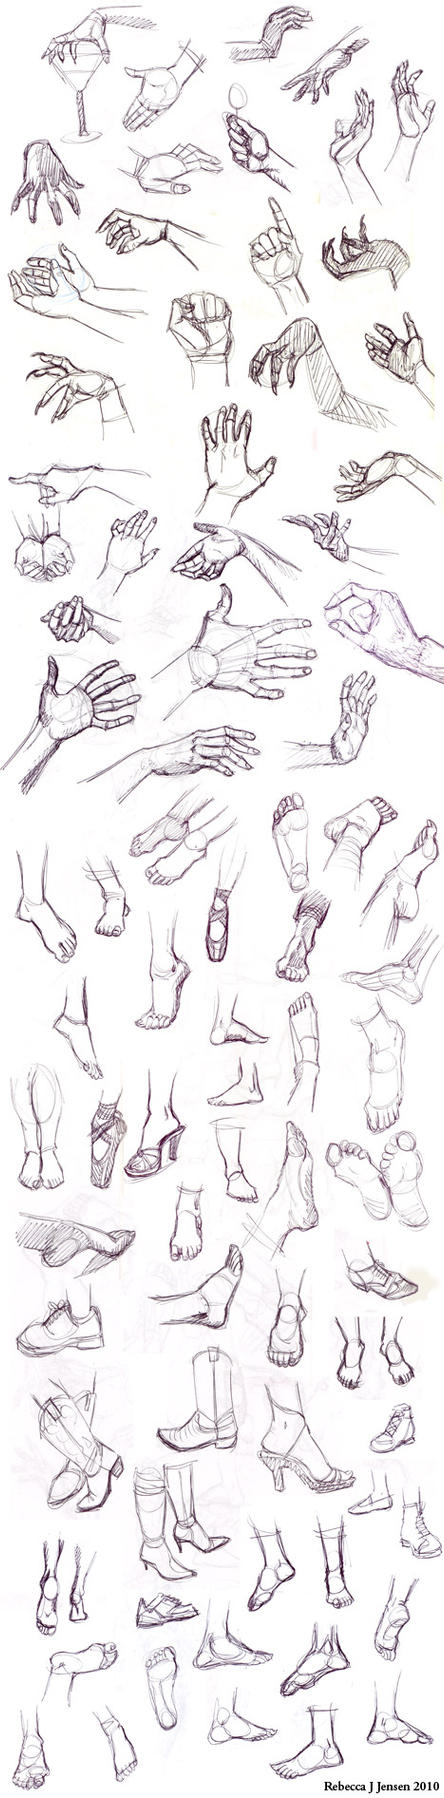 Hands and Feet Sketches by purplerebecca